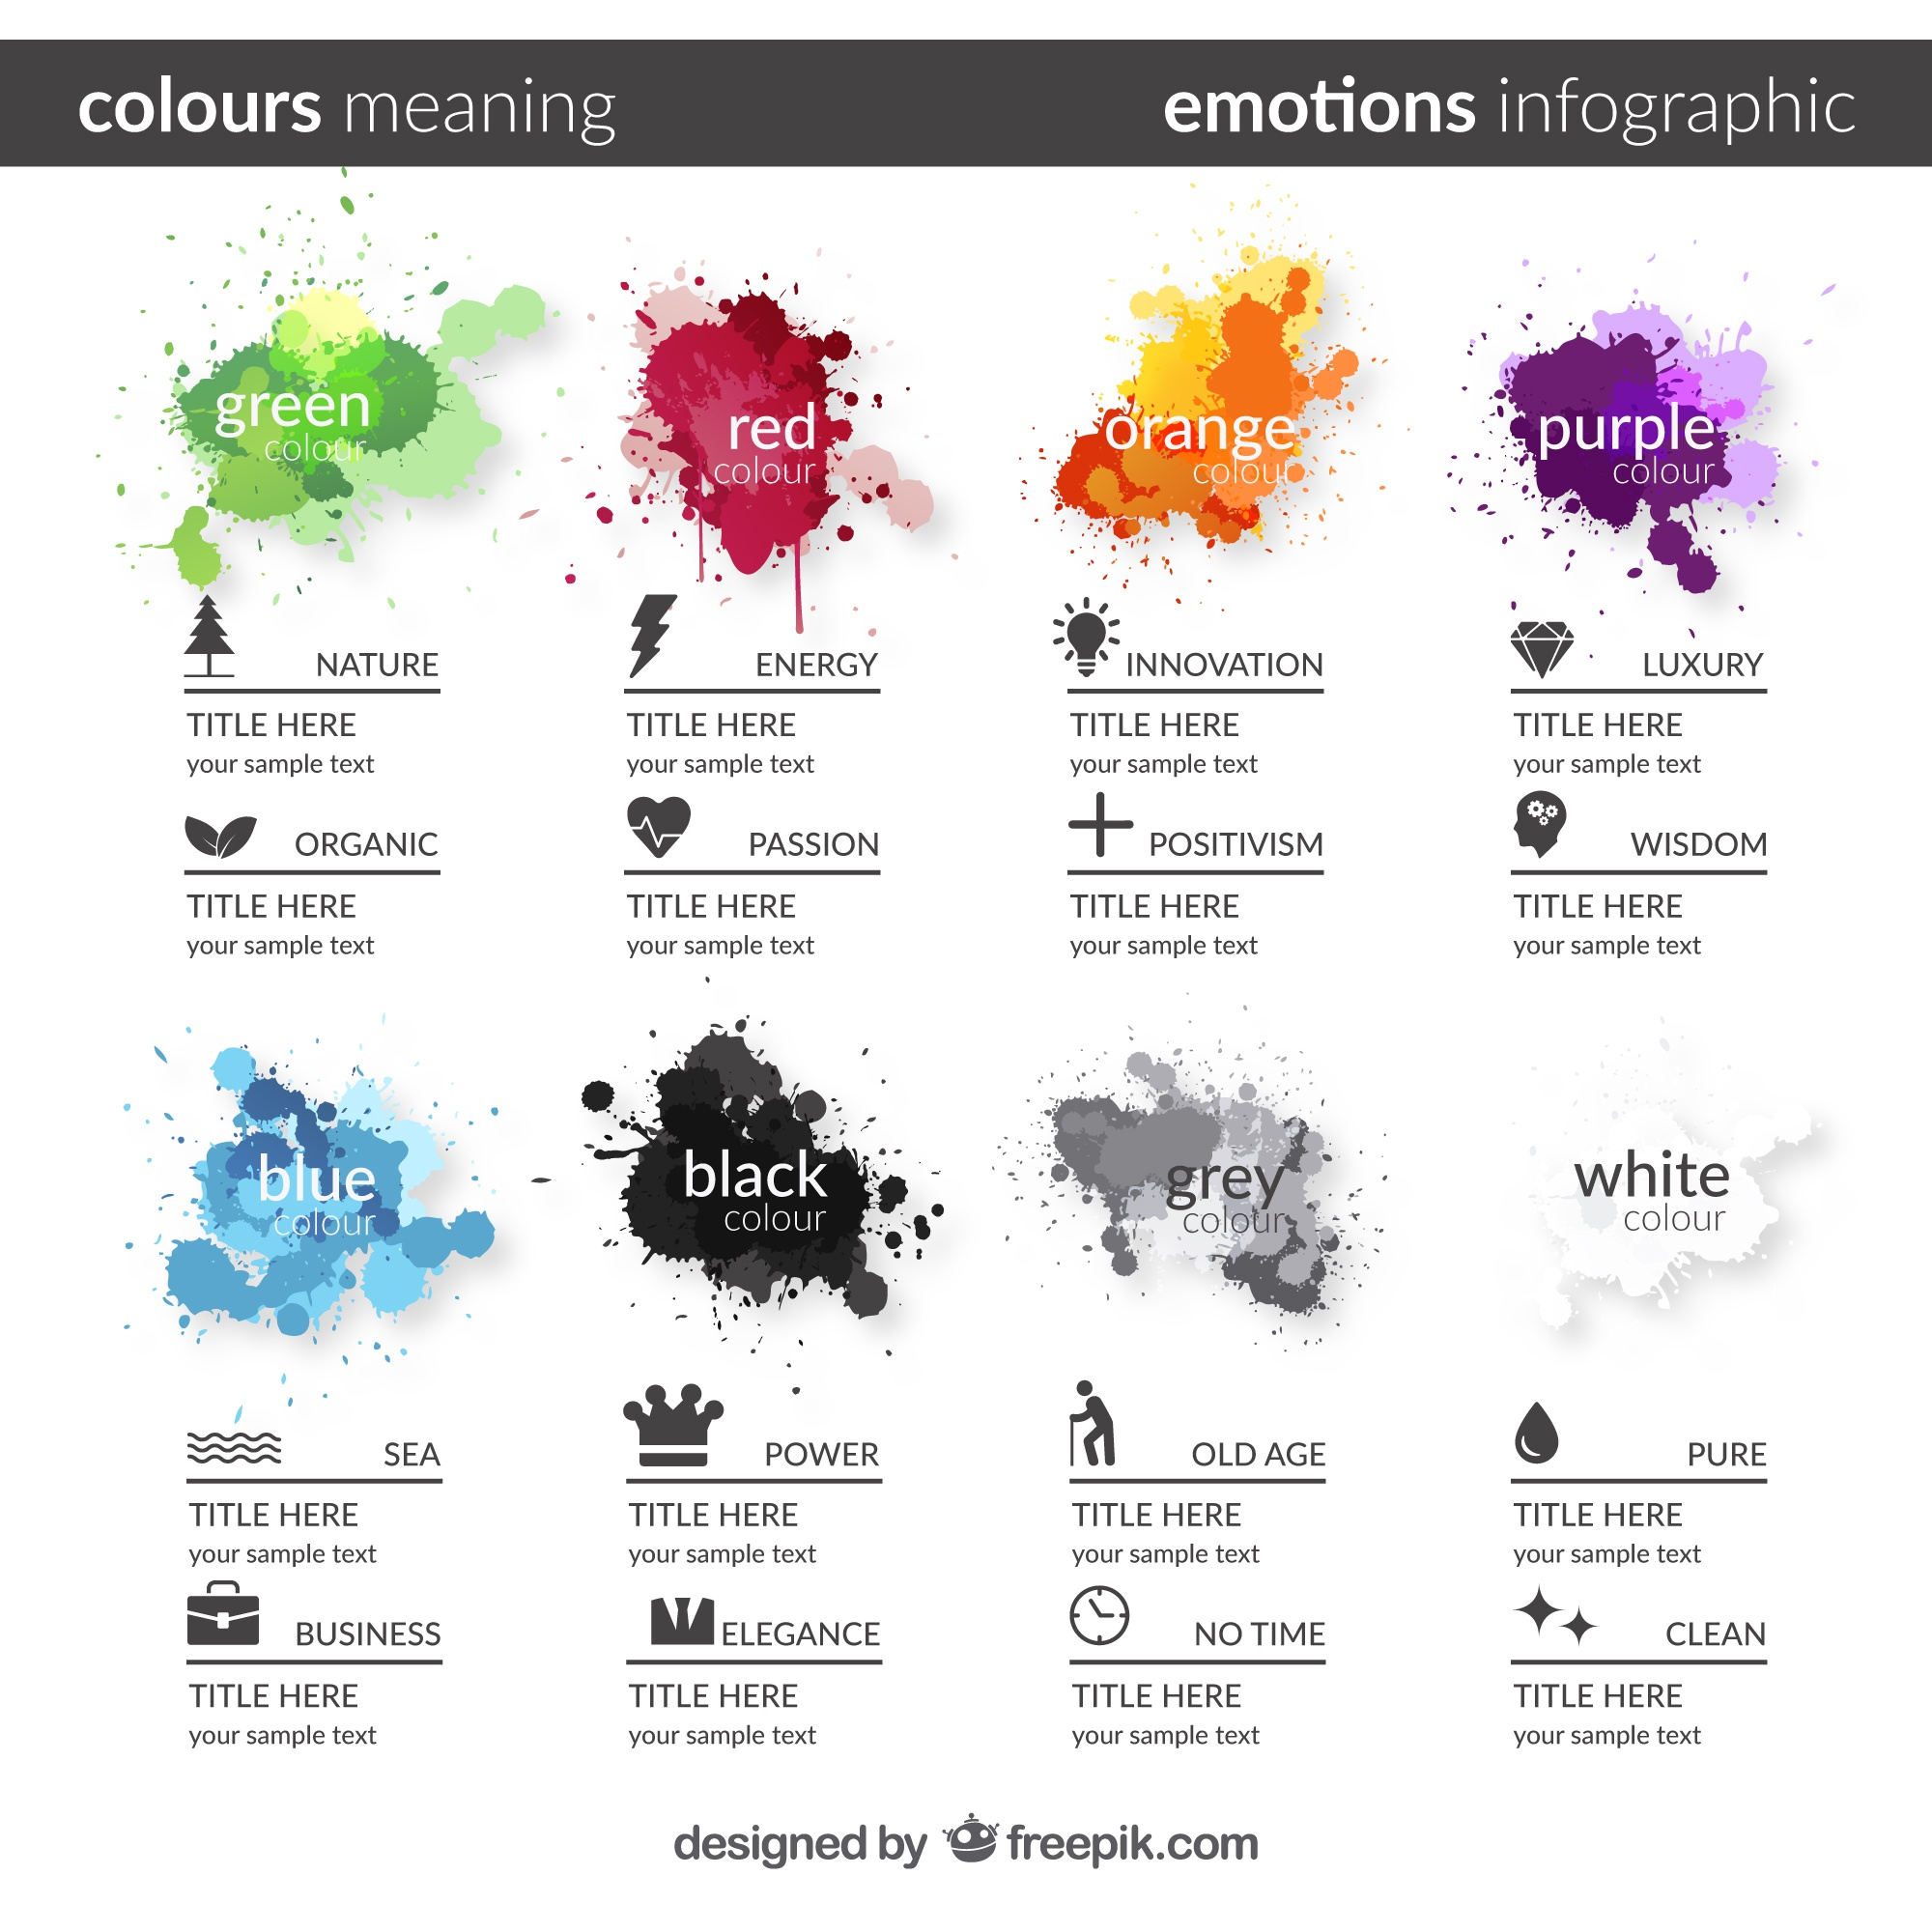 Emotions Infografik